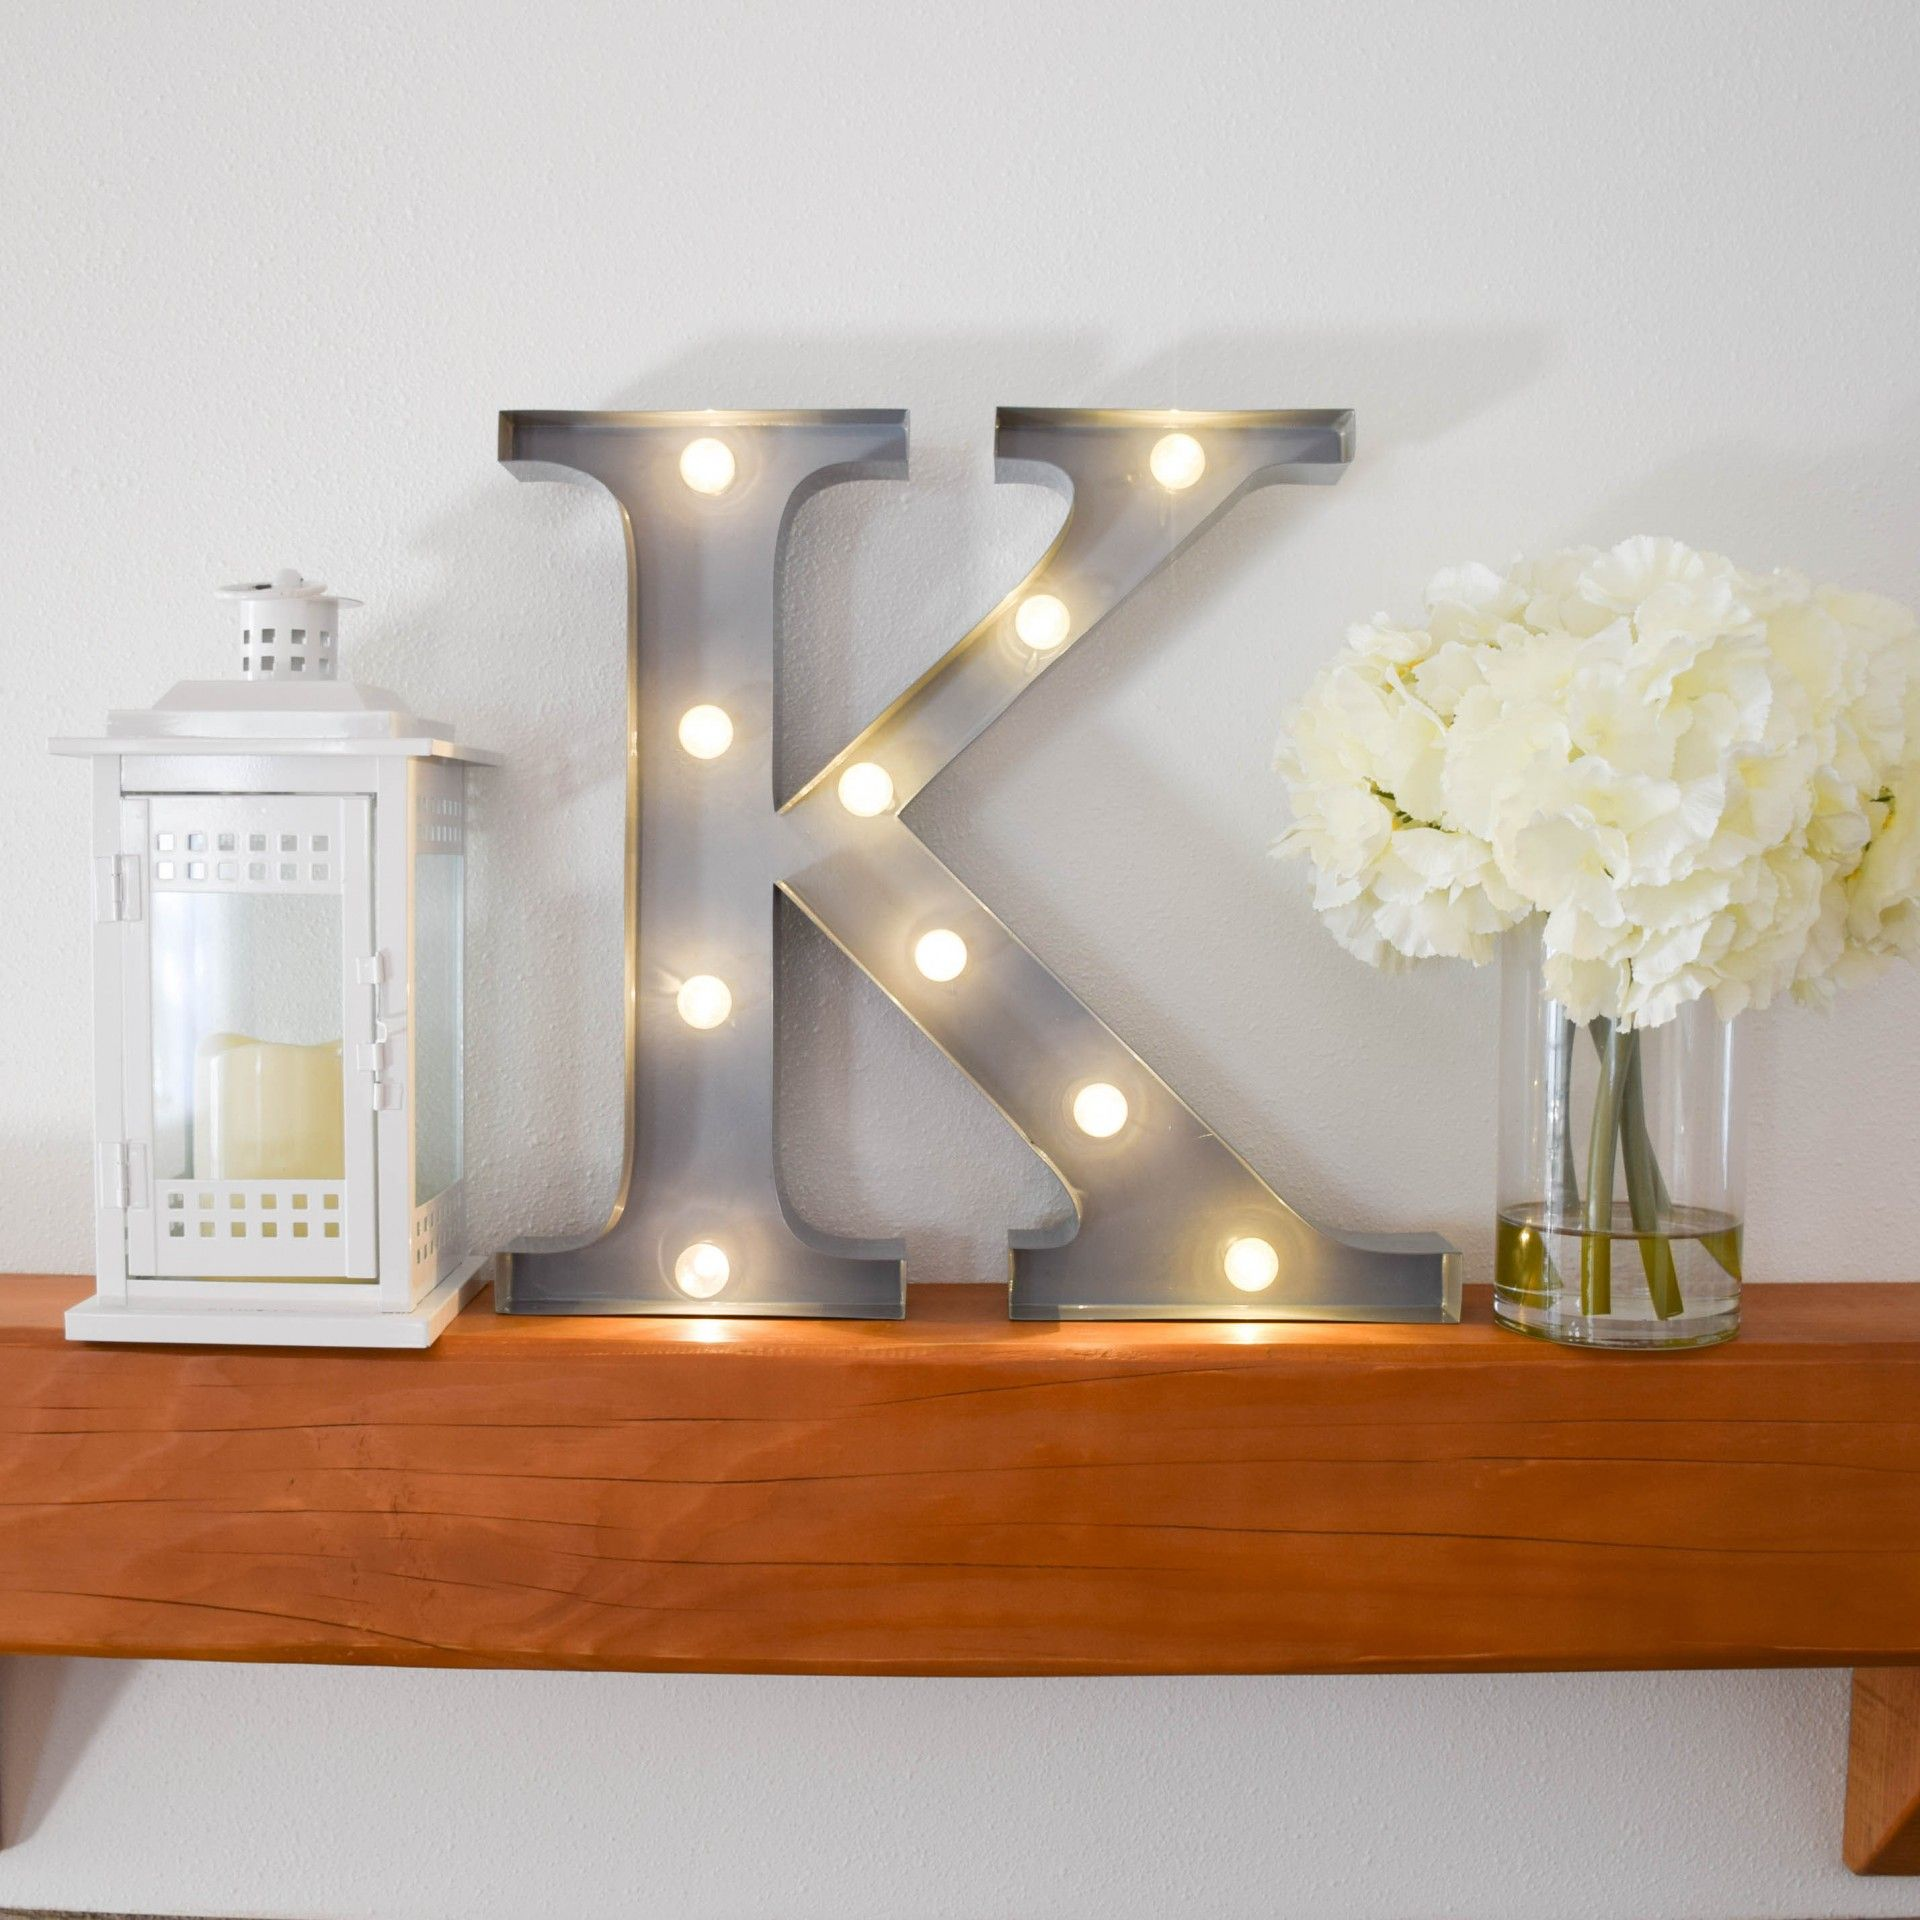 Ikea Couch Bett Recruiting Kappa Letter Light In 2019 A List Marquee Lights Light Letters